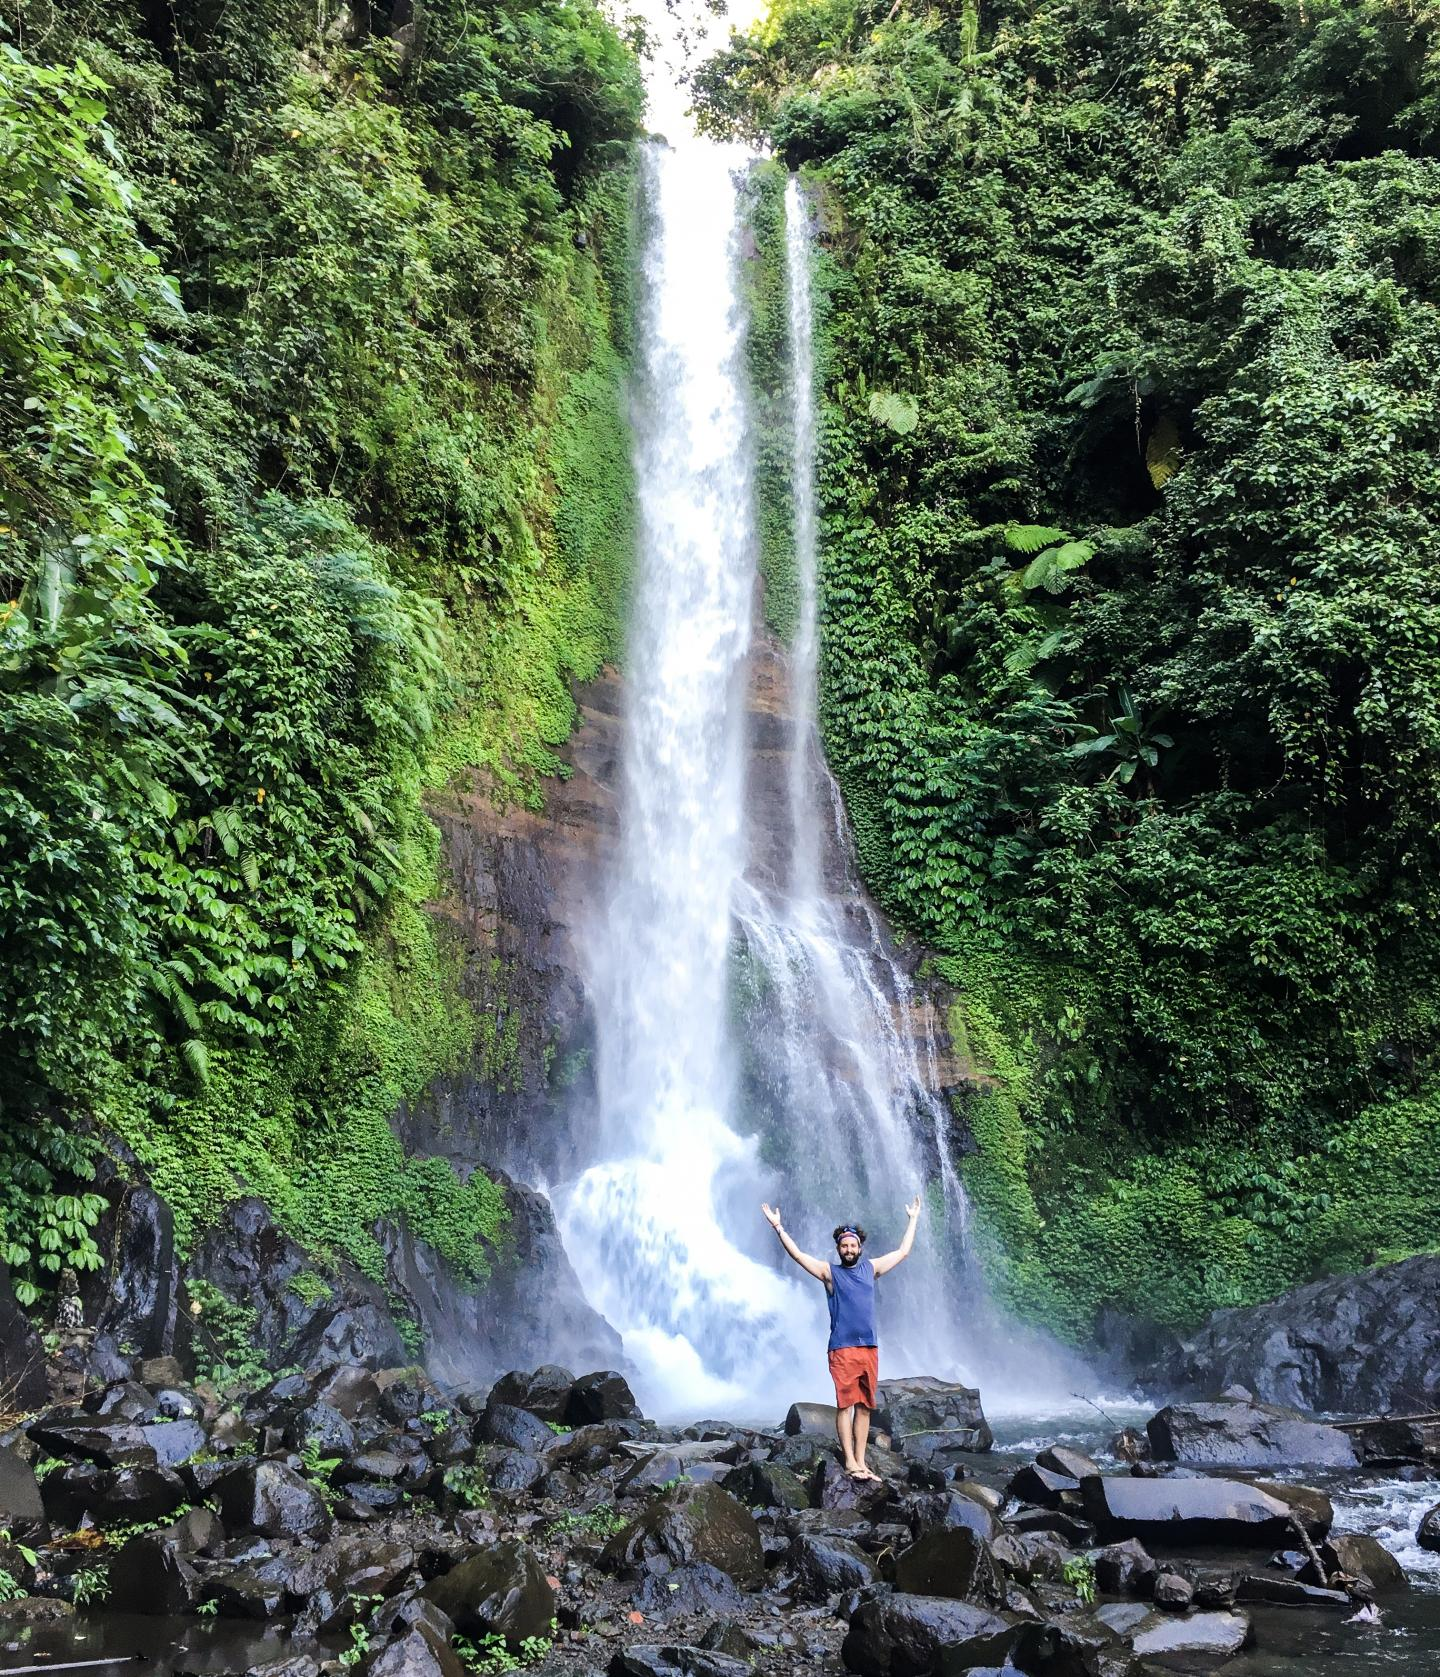 Teen in front of waterfall in Bali, Indonesia